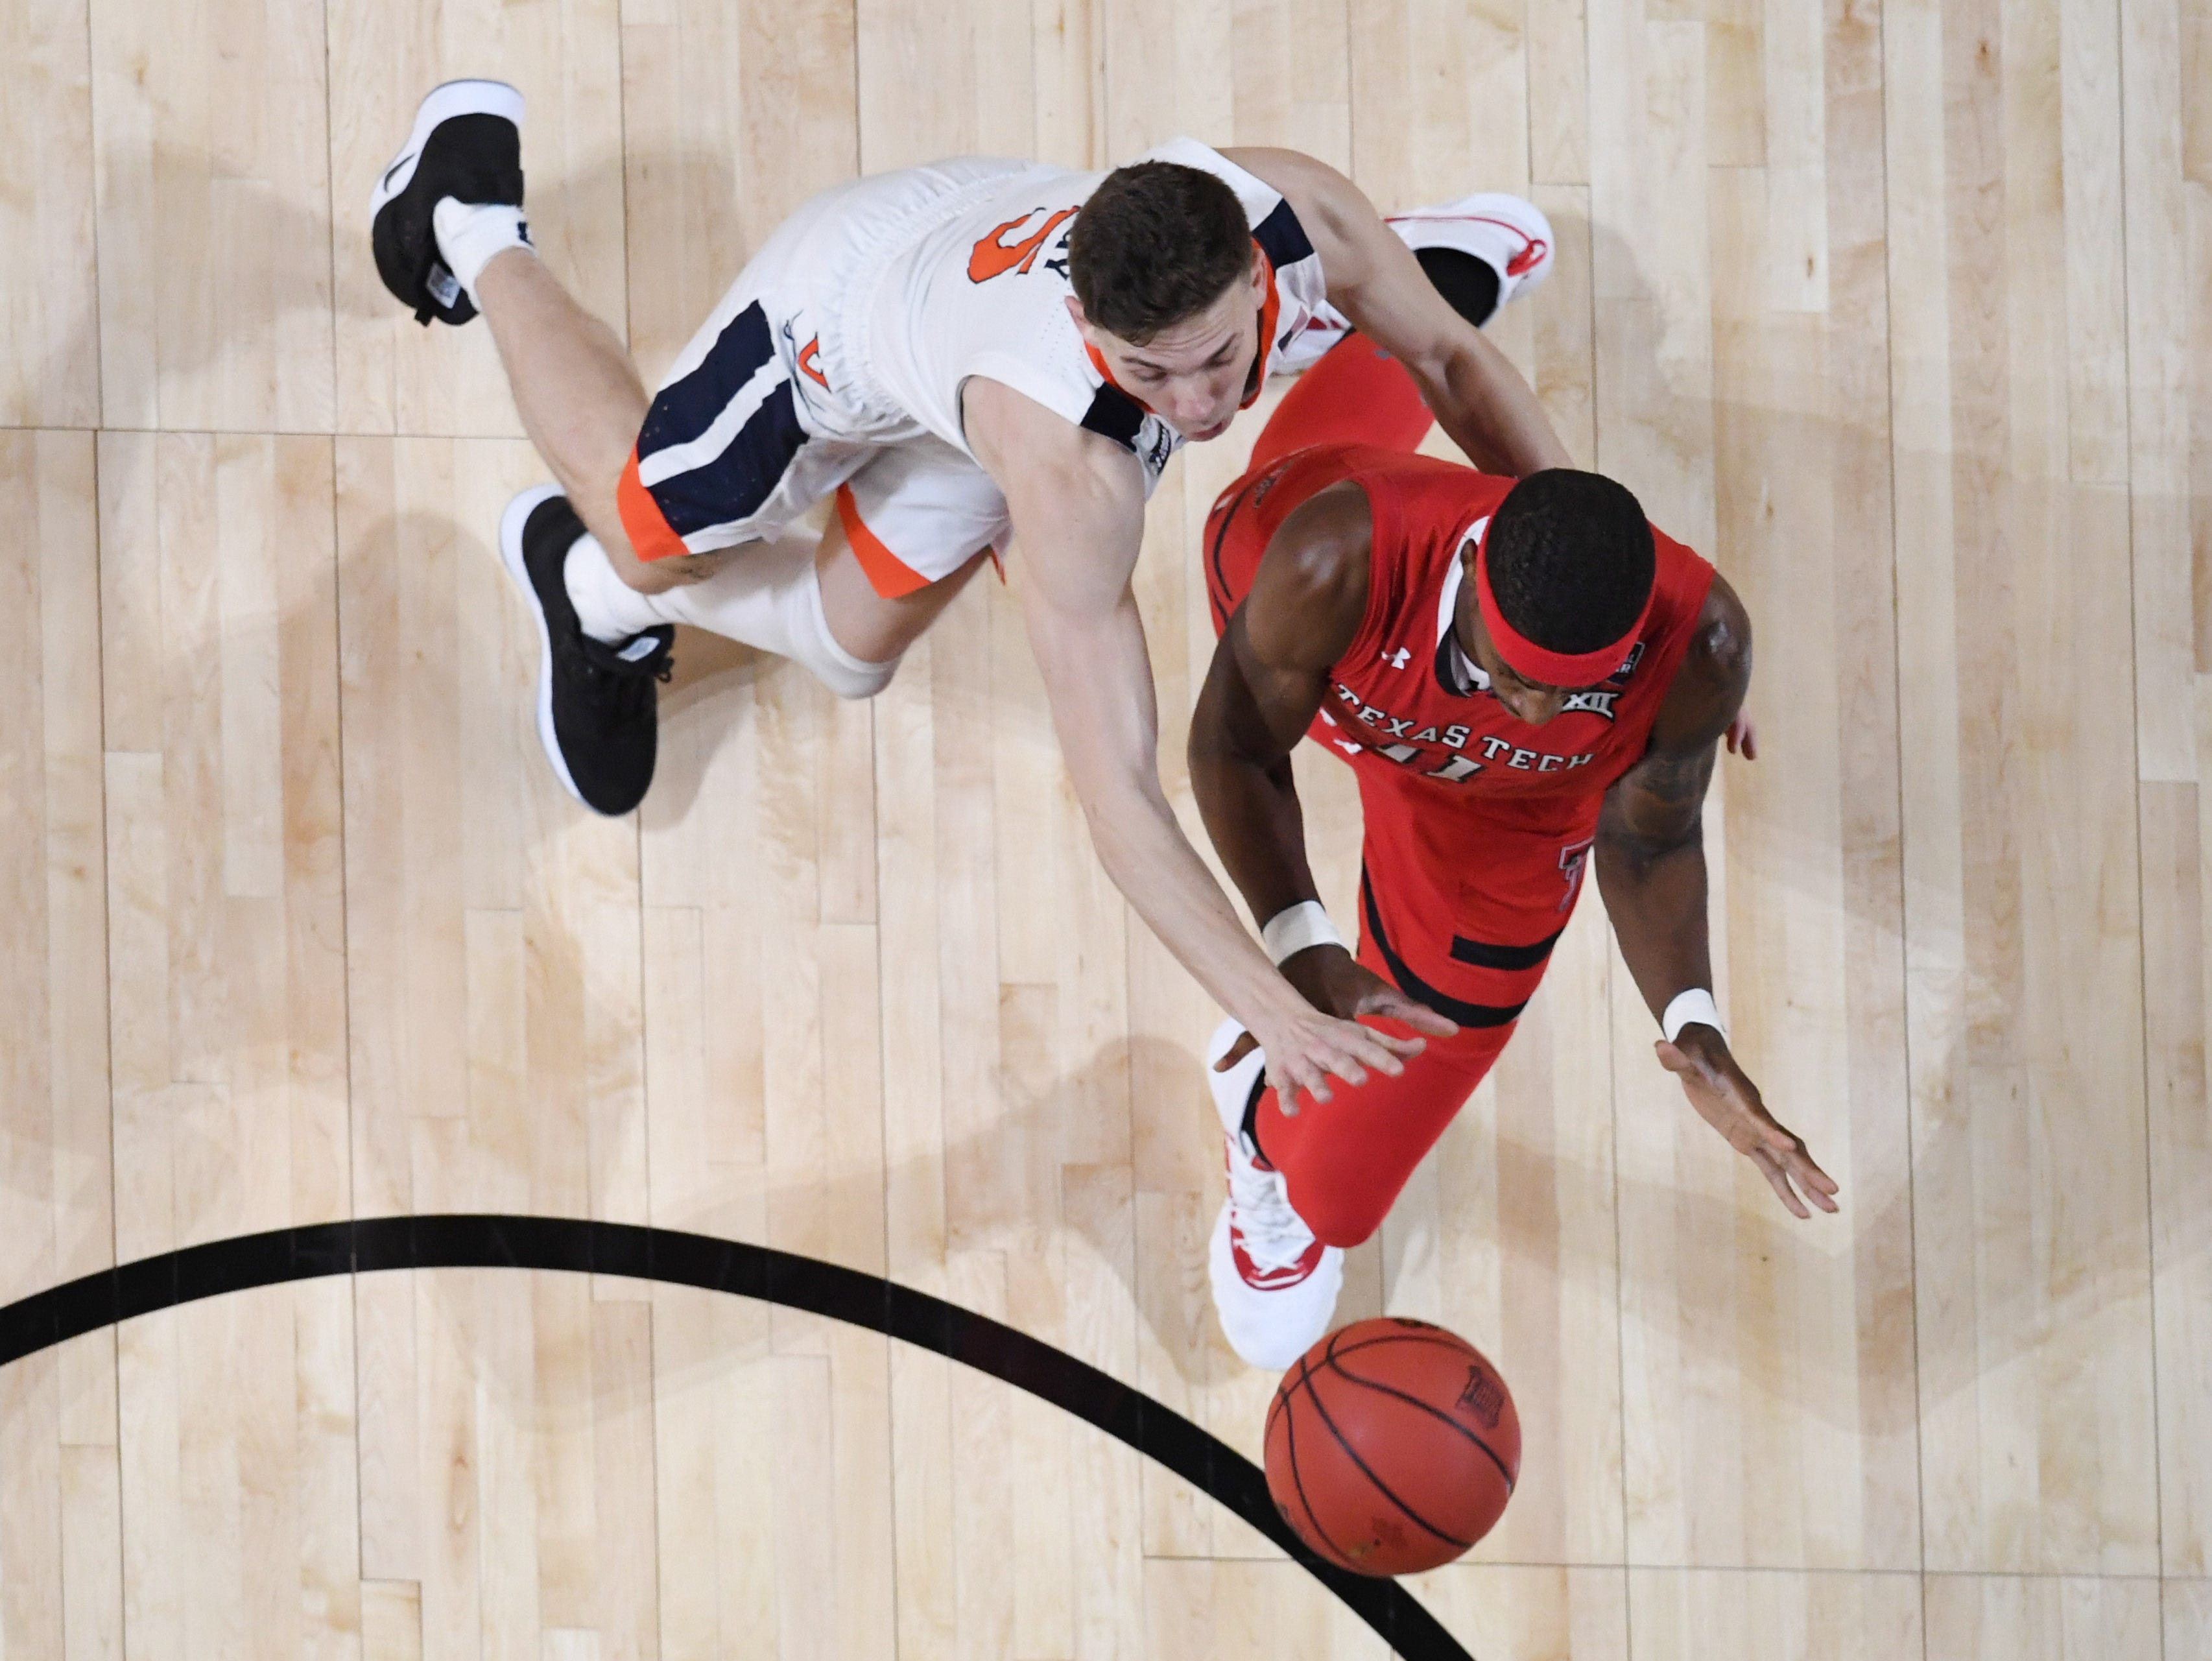 Apr 8, 2019; Minneapolis, MN, USA; Texas Tech Red Raiders forward Tariq Owens (11) battles for the ball with Virginia Cavaliers guard Kyle Guy (5) in the first half in the championship game of the 2019 men's Final Four at US Bank Stadium. Mandatory Credit: Robert Deutsch-USA TODAY Sports